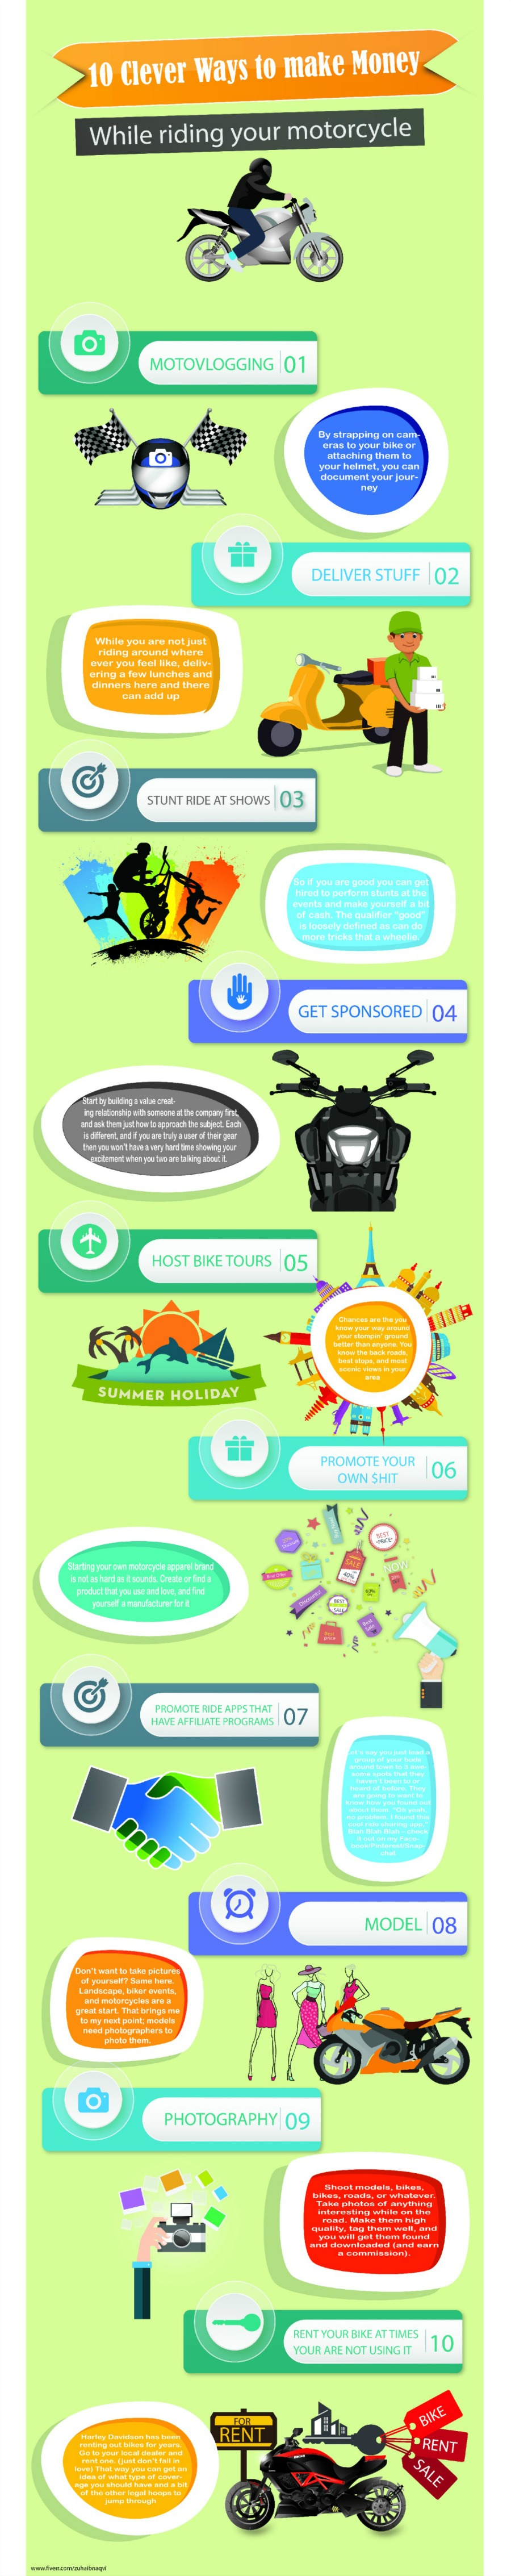 10 Clever ways to make money while riding your motorcycle graphic